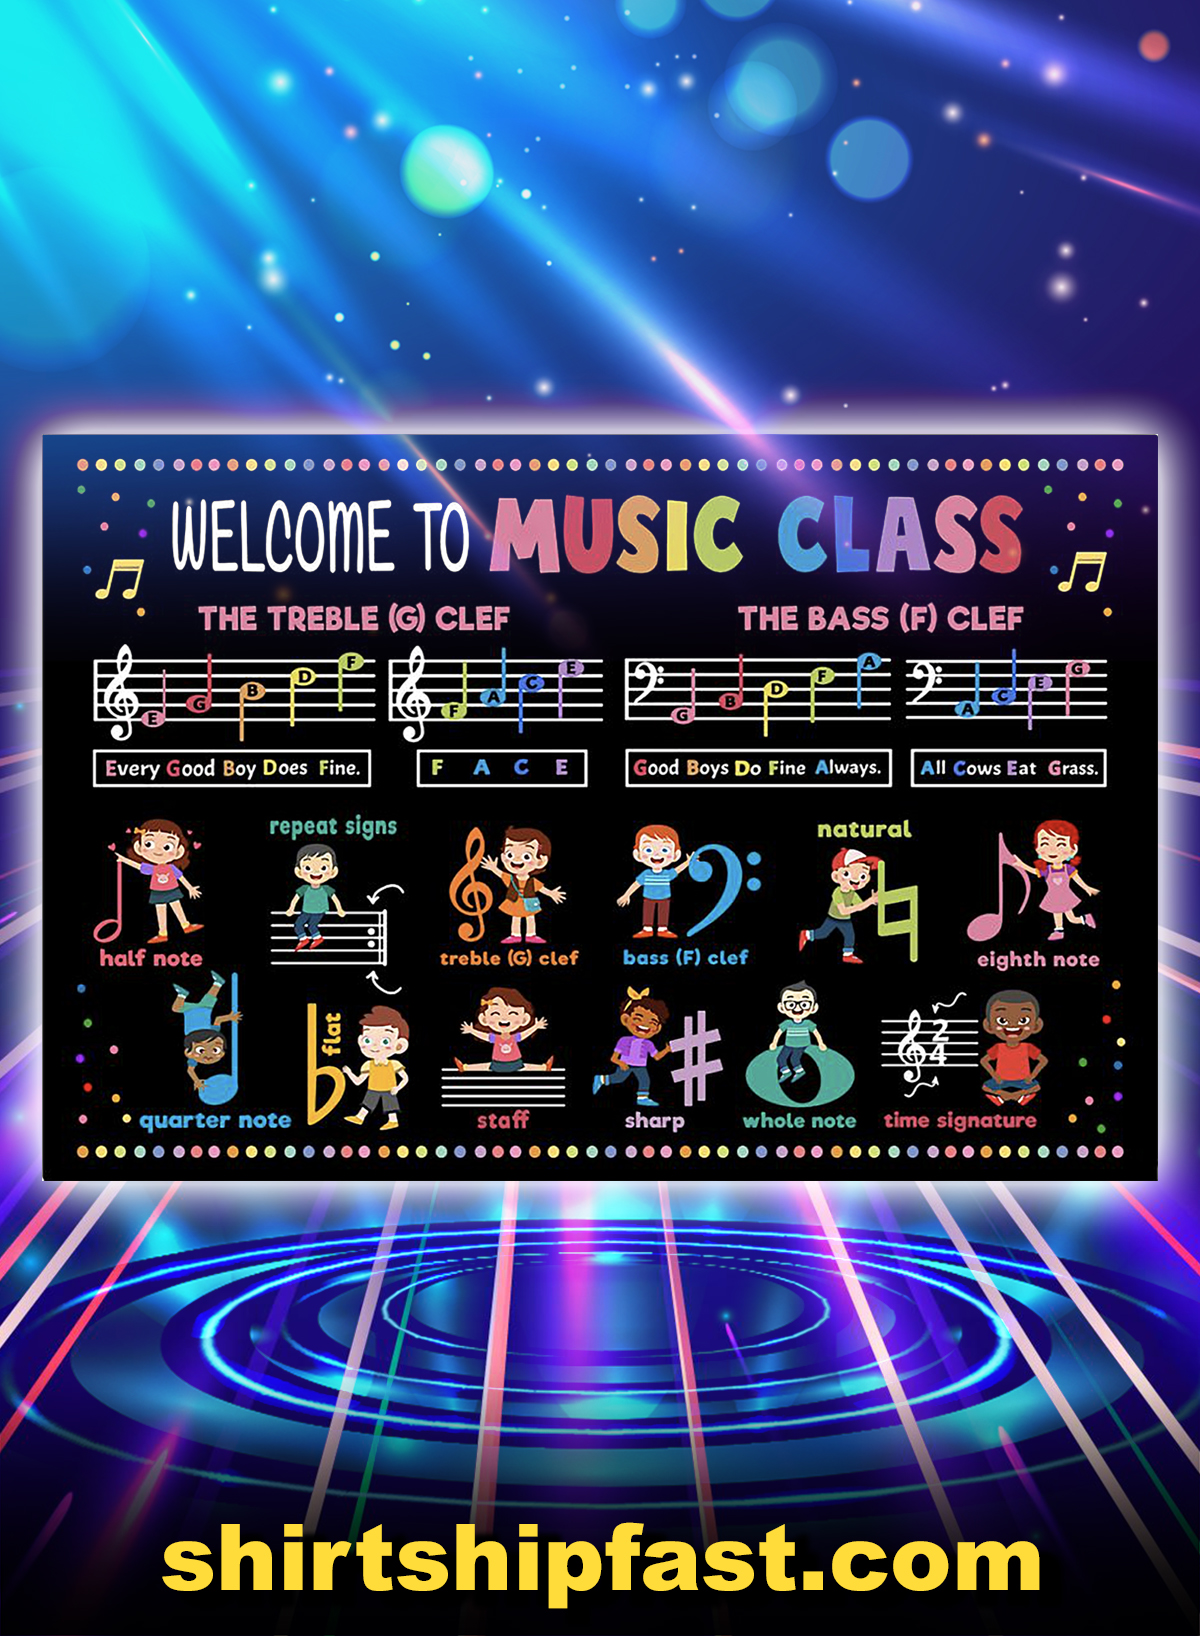 Welcome to music class poster - A4